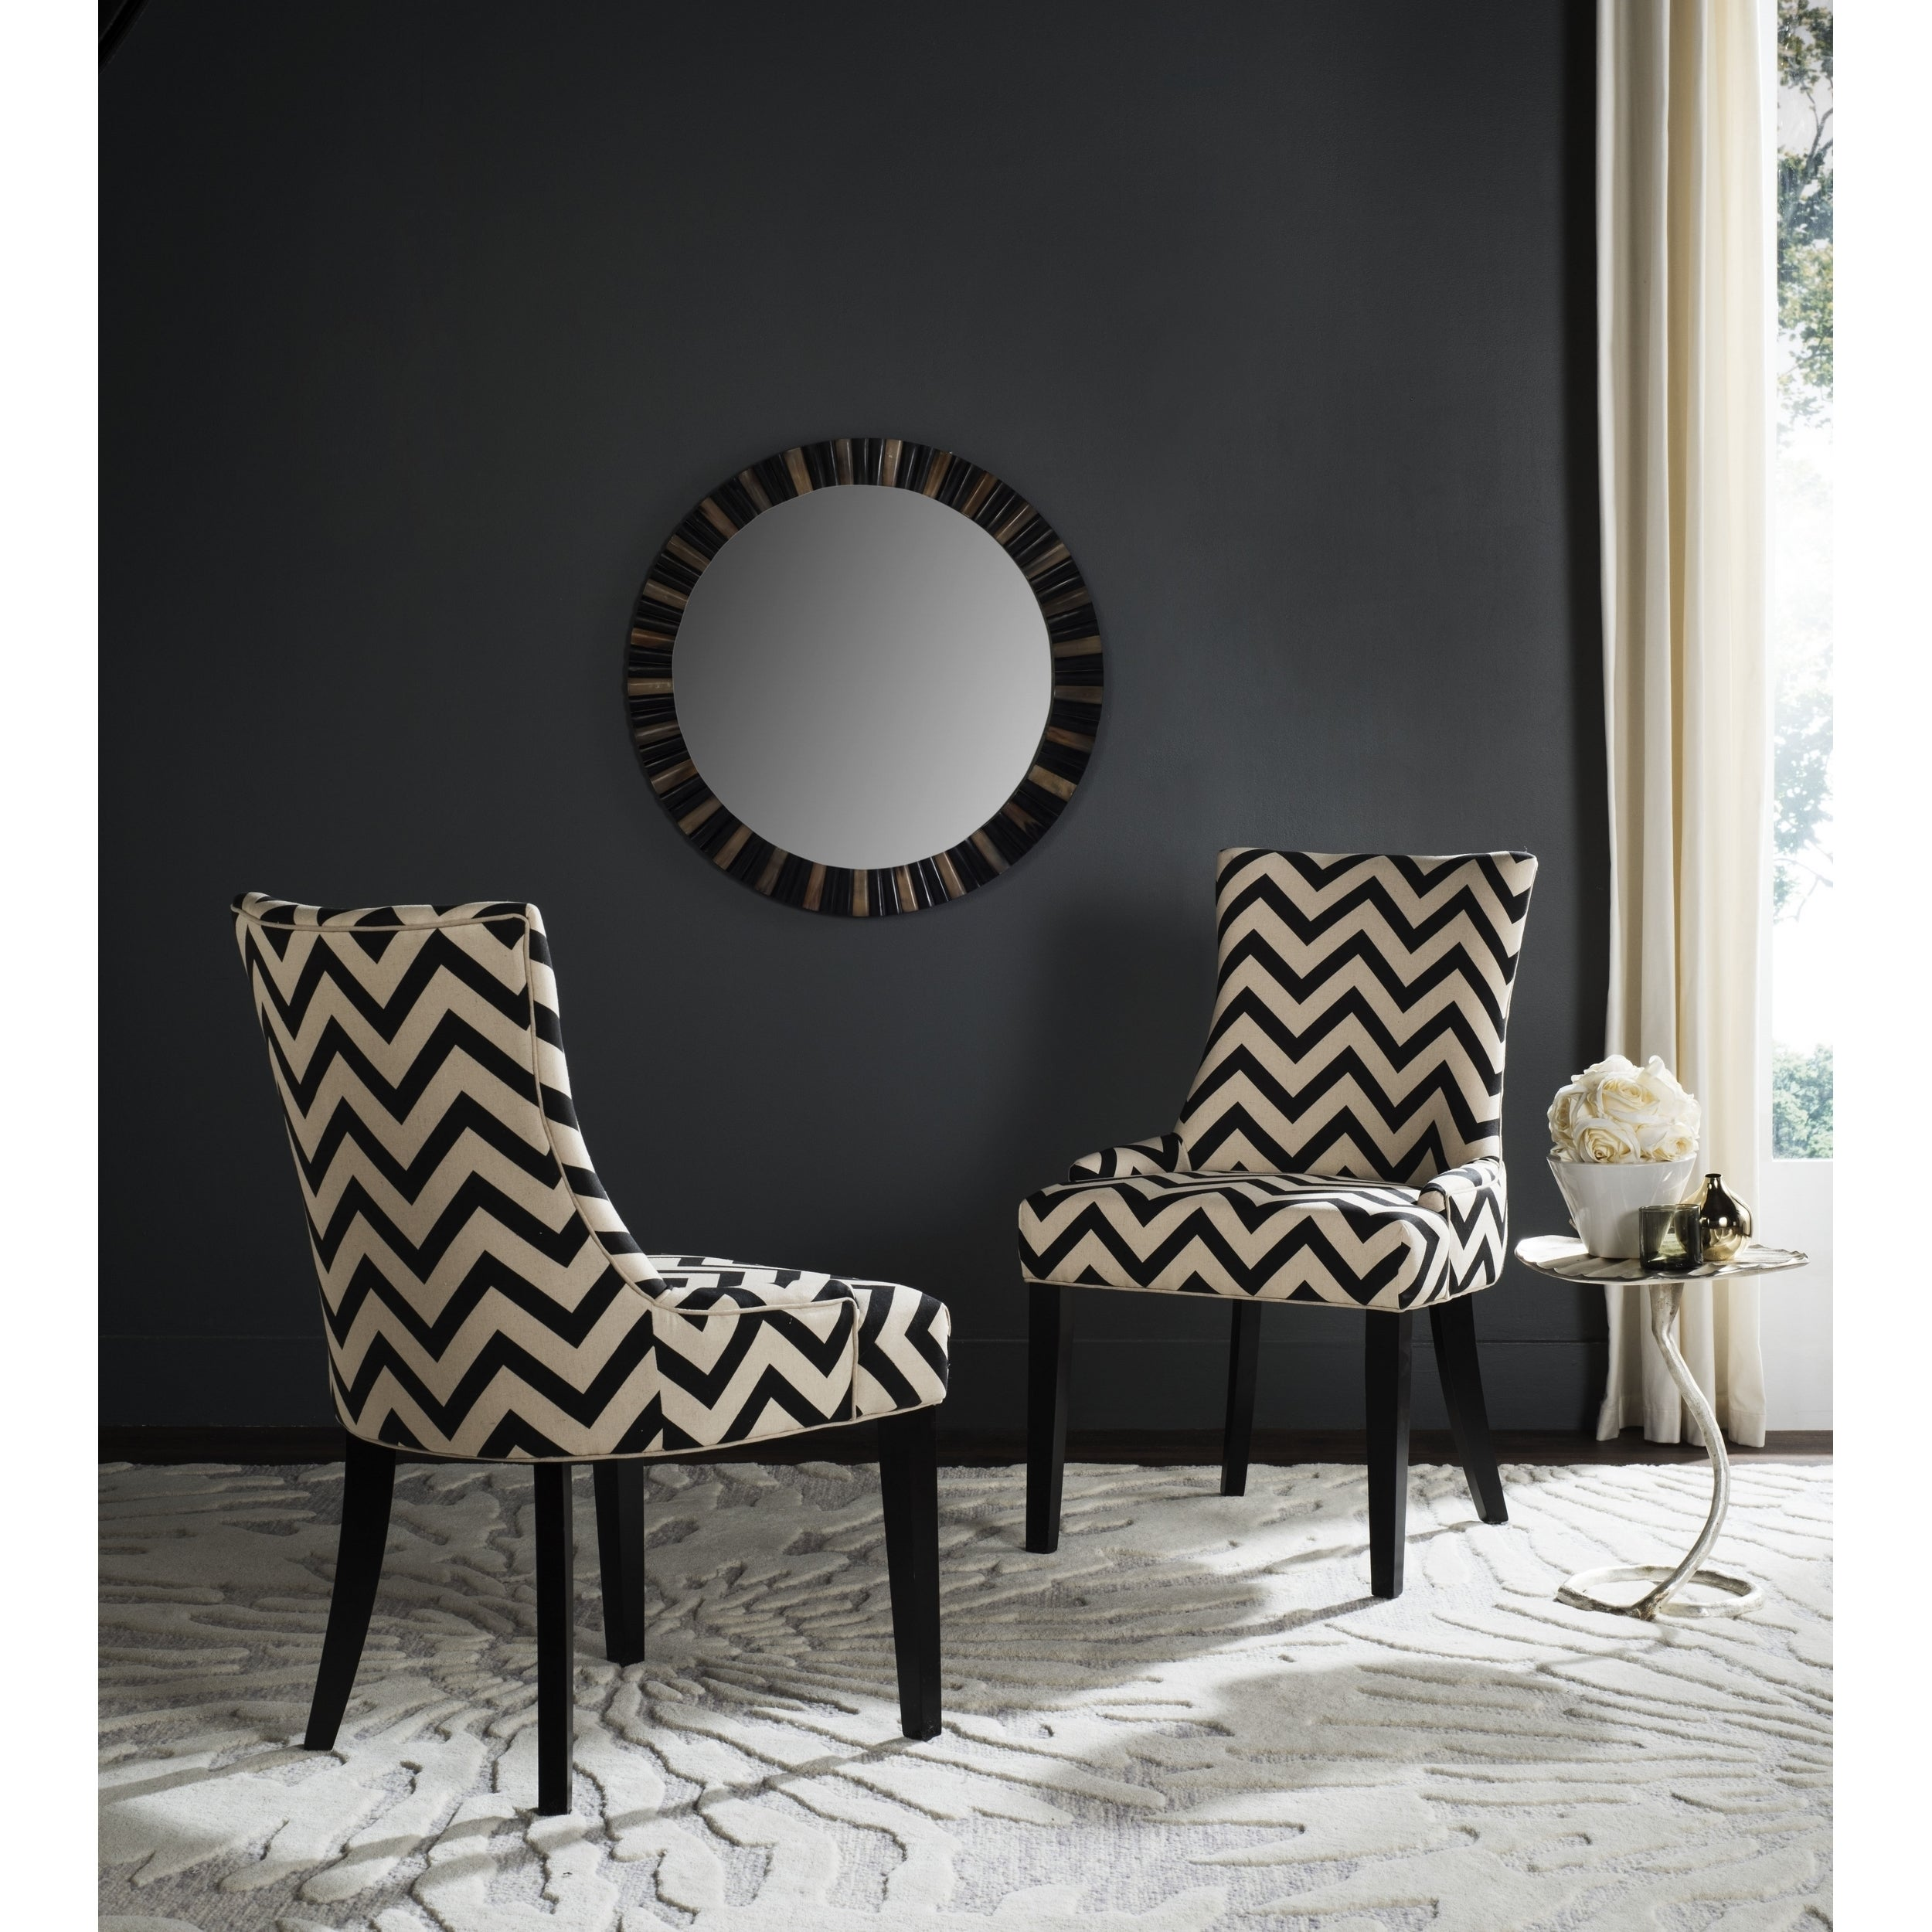 Attrayant Shop Safavieh En Vogue Dining Lester Black/ White Zig Zag Chevron Dining  Chairs (Set Of 2)   Free Shipping Today   Overstock.com   11391358